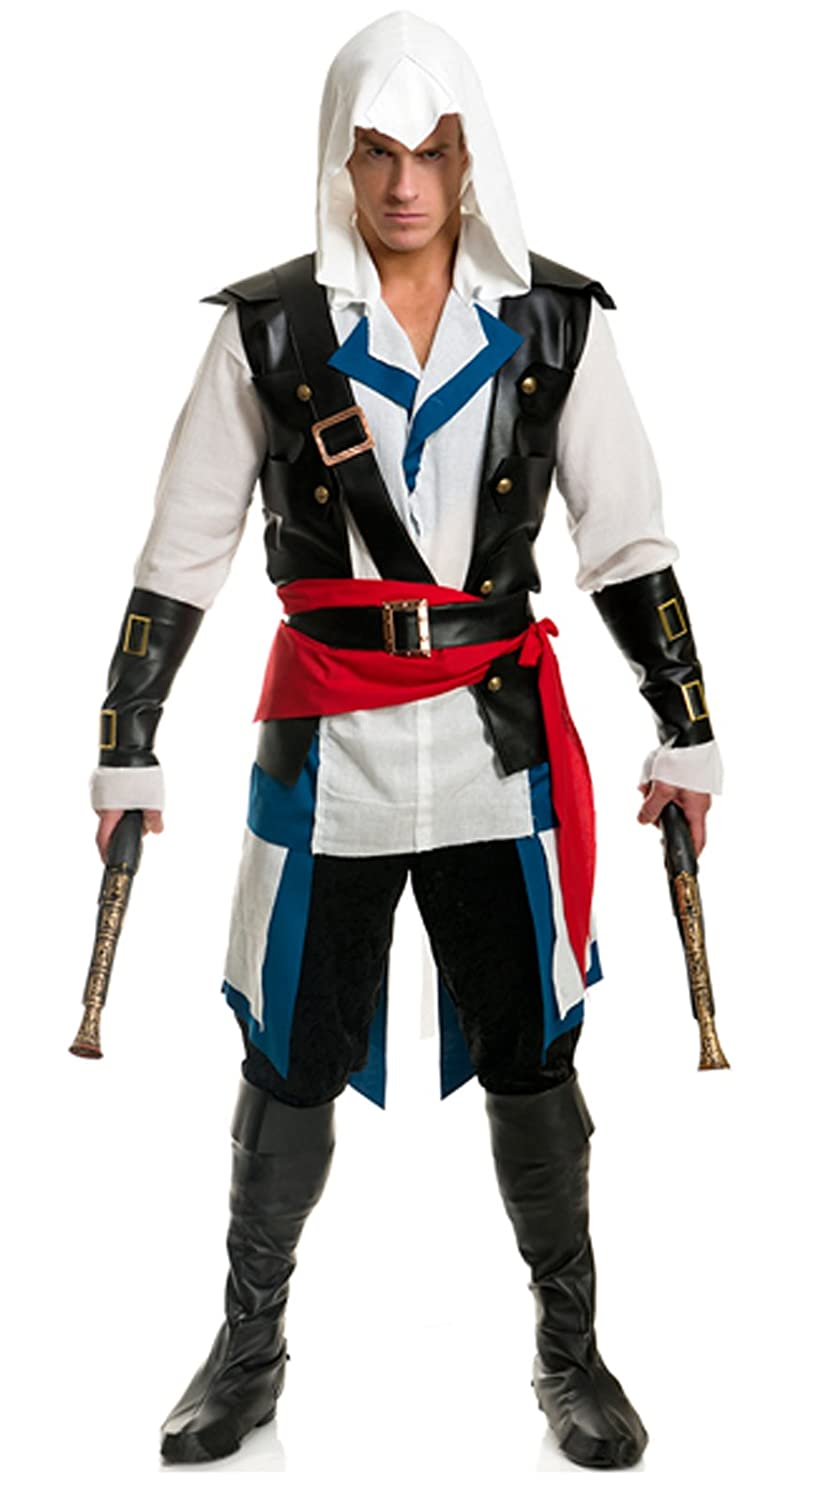 sc 1 st  Amazon.com & Amazon.com: Largemouth Menu0027s Cutthroat Pirate Assassin Costume: Clothing